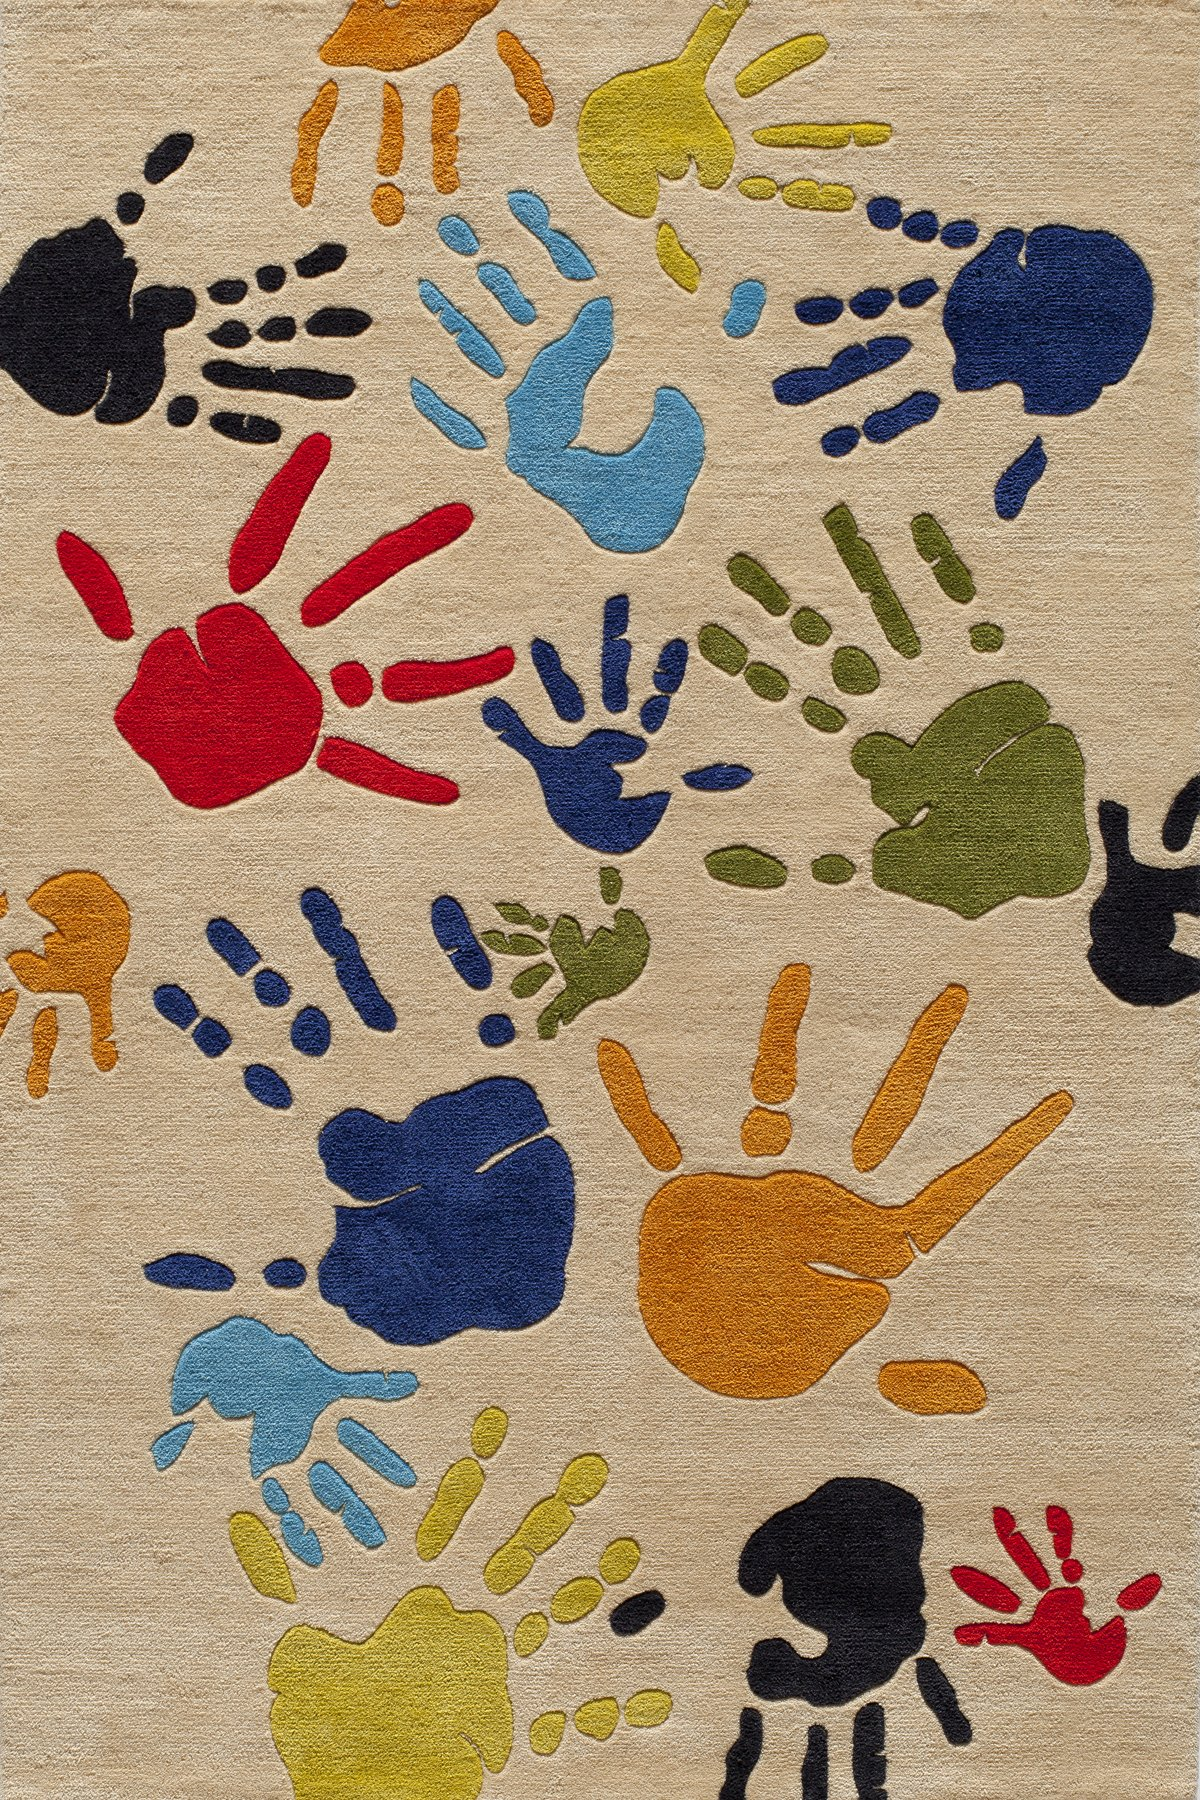 Momeni Rugs LMOJULMJ17IVY4060 Lil' Mo Whimsy Collection, Kids Themed Hand Carved & Tufted Area Rug, 4' x 6', Multicolor Handprints on Ivory